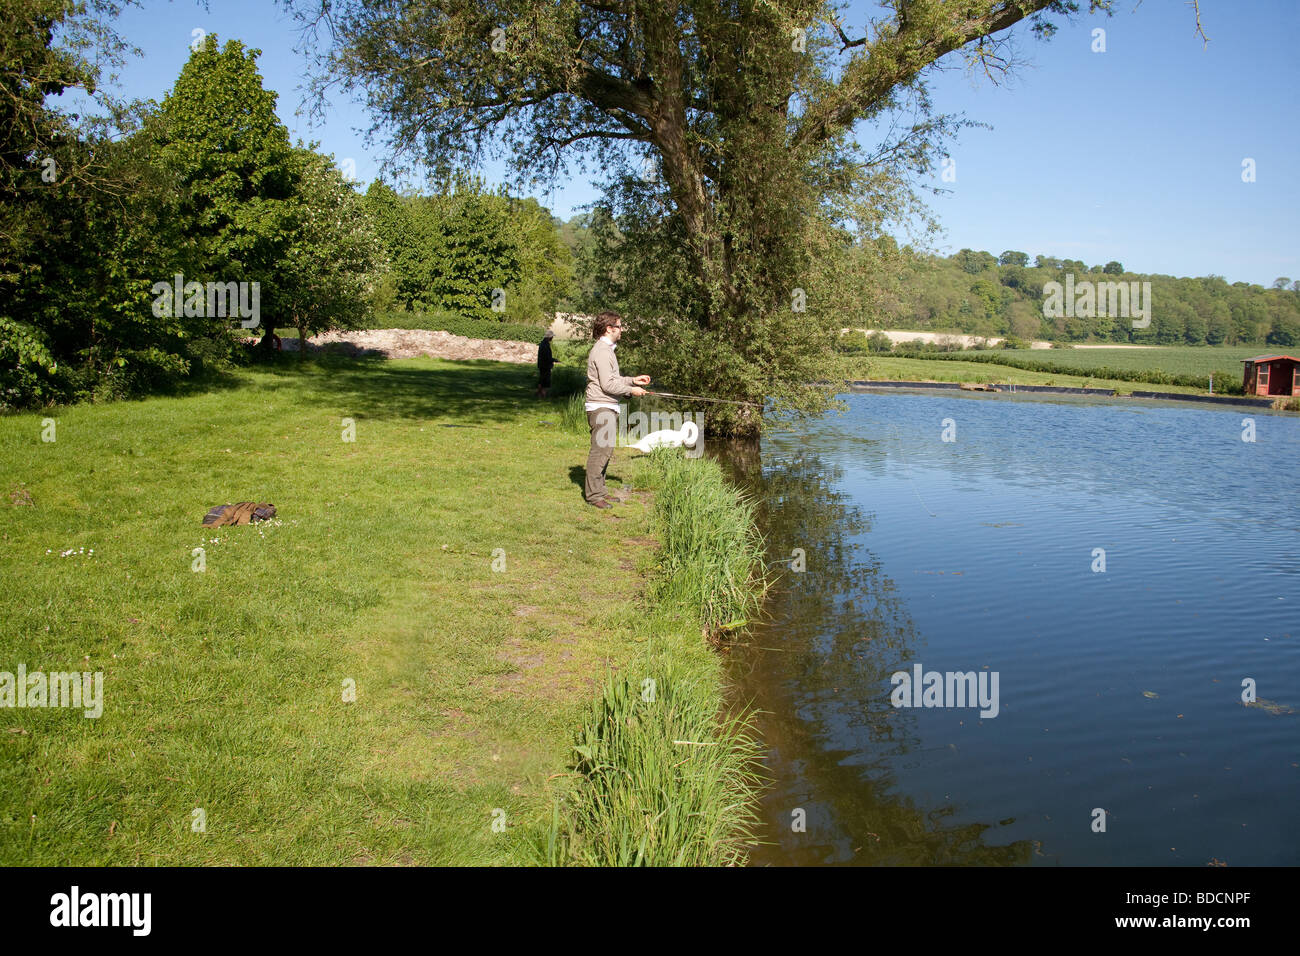 Fly Fisherman at Meon Springs Trout Fishery, Hampshire , England. - Stock Image